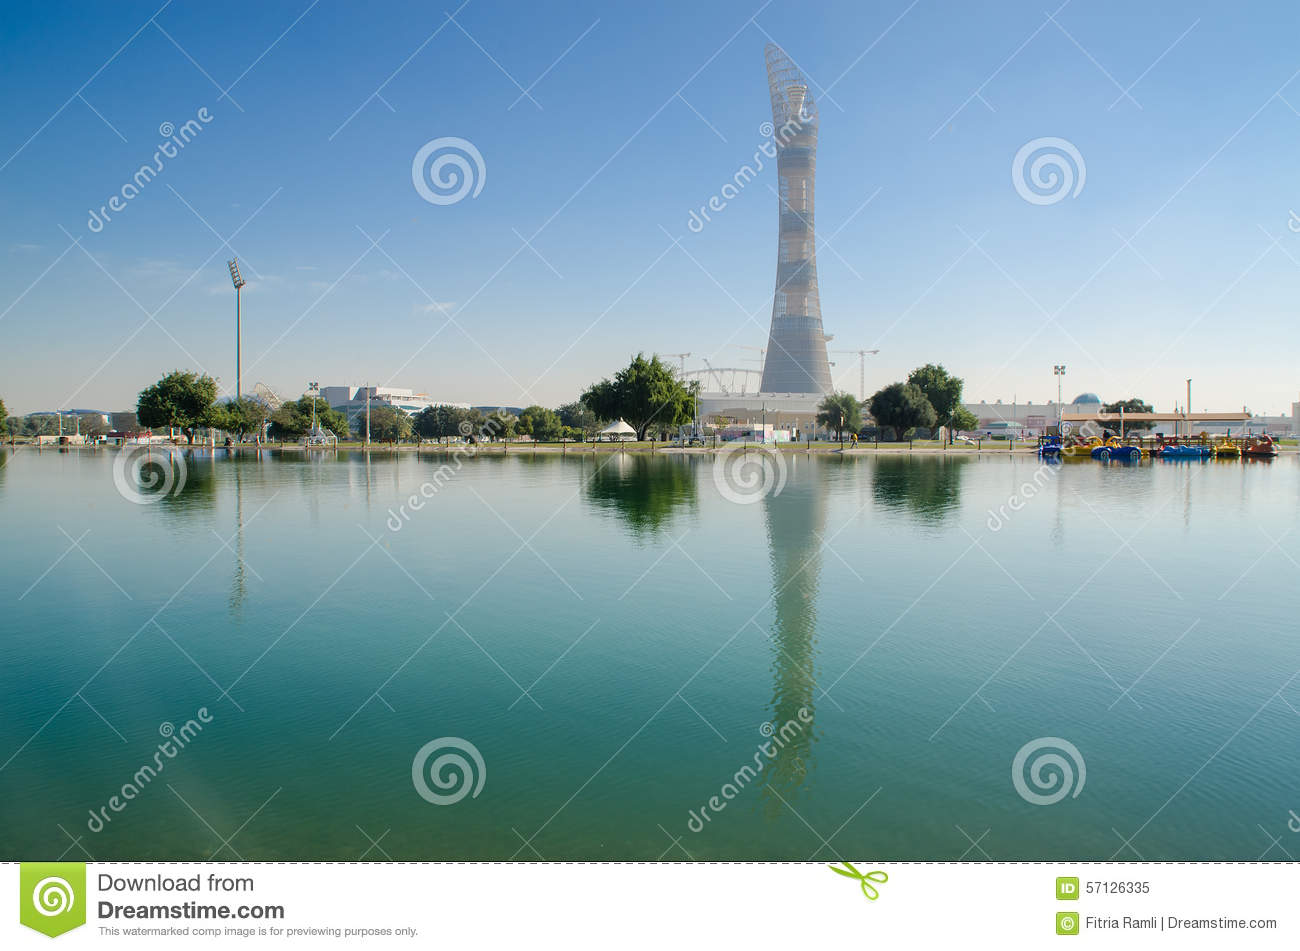 DOHA, QATAR - JULY 26: The Aspire Tower in Doha Sports City Complex. July 26, 2015 in Doha, Qatar, Middle East